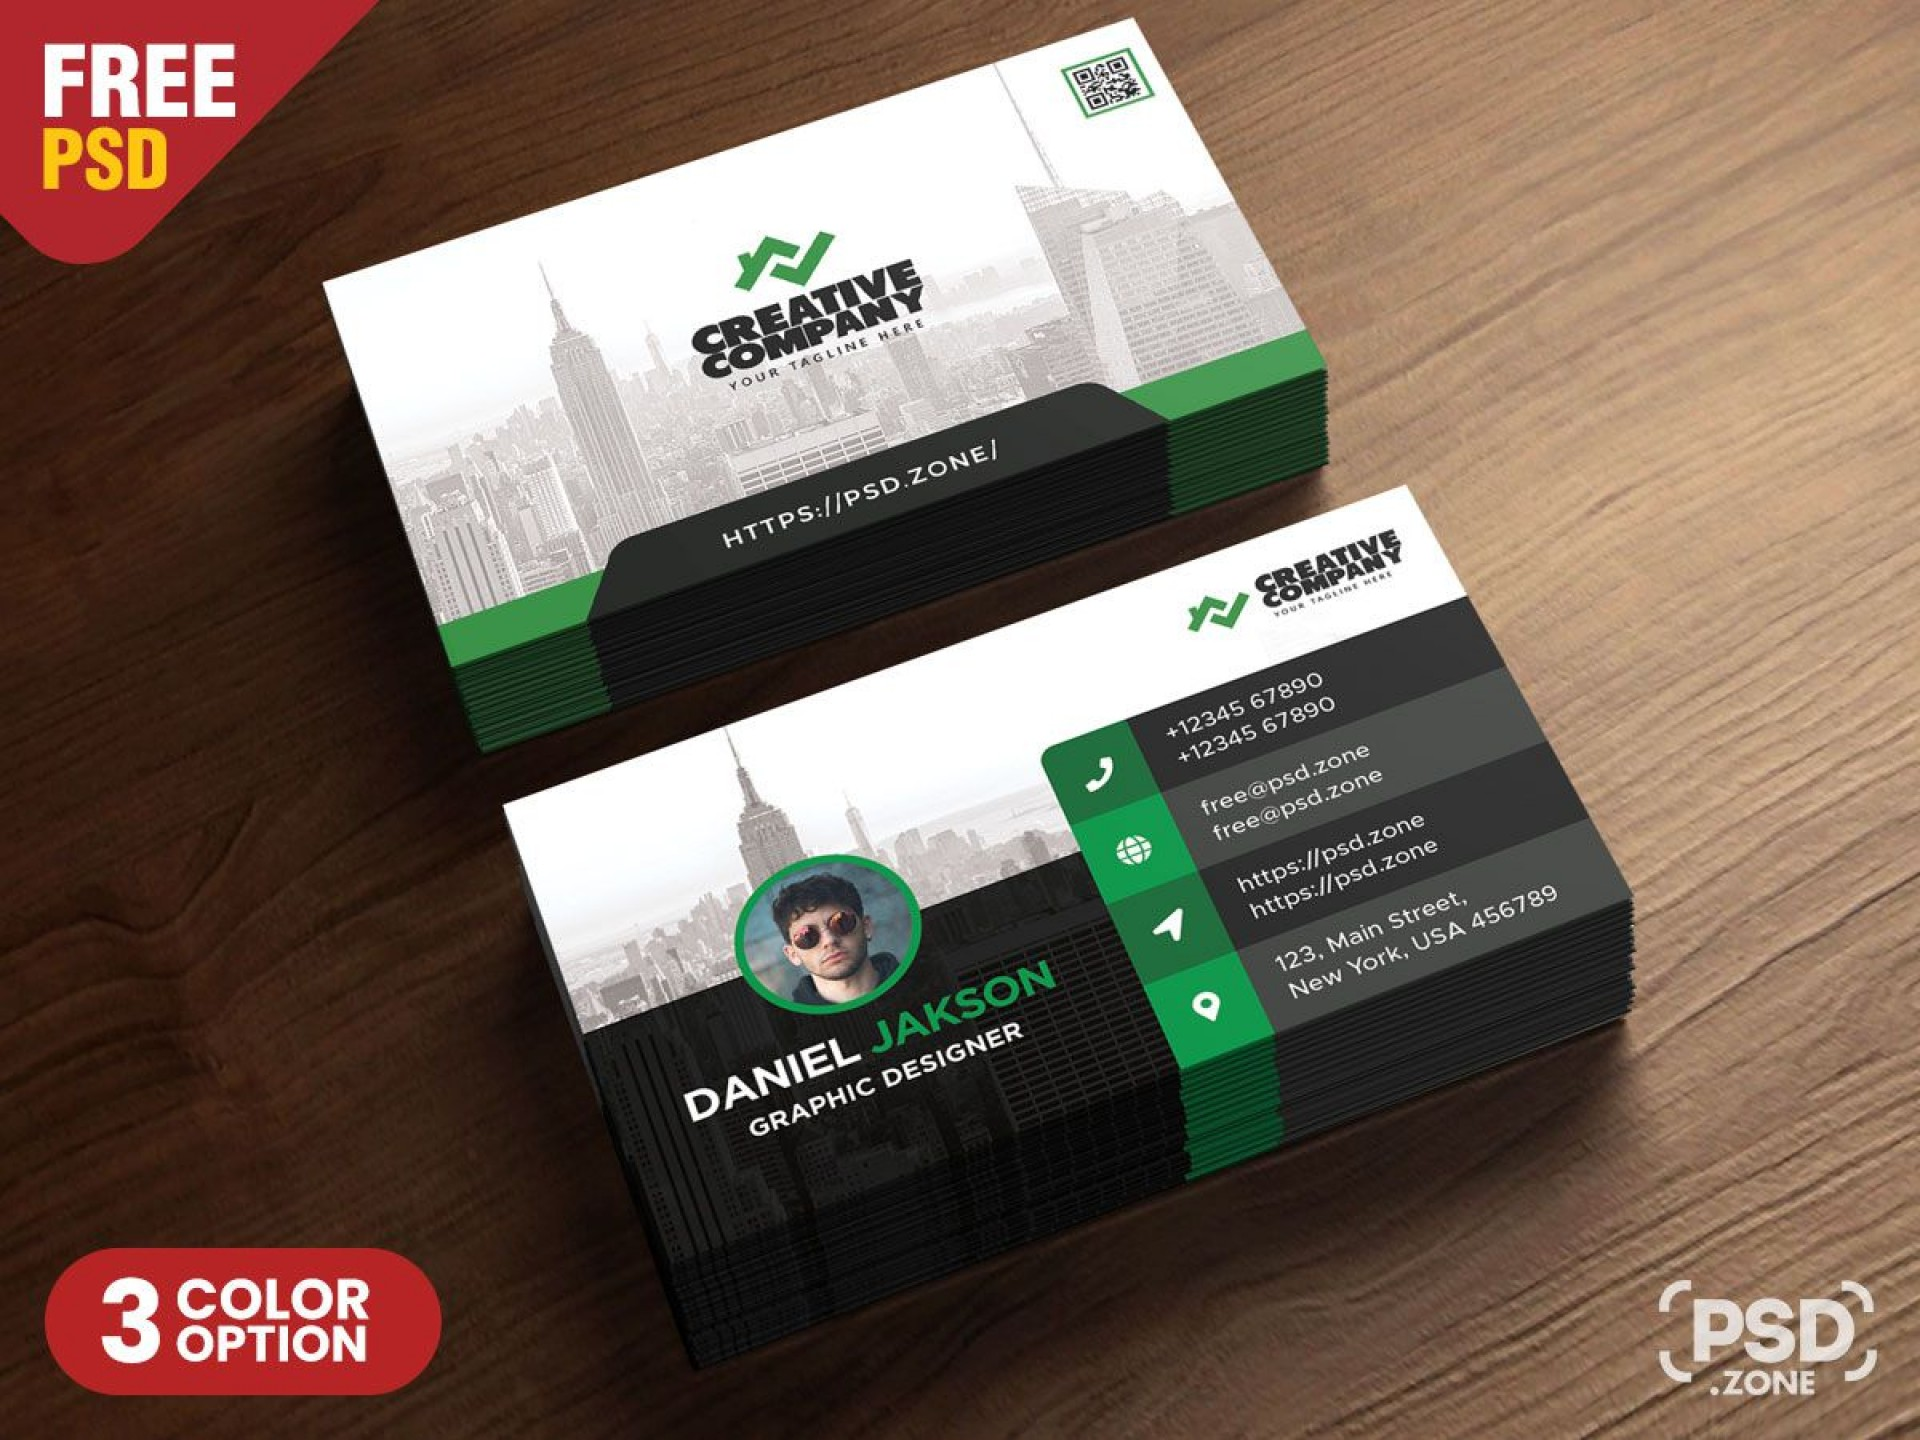 005 Best Psd Busines Card Template Design  With Bleed And Crop Mark Vistaprint Free1920